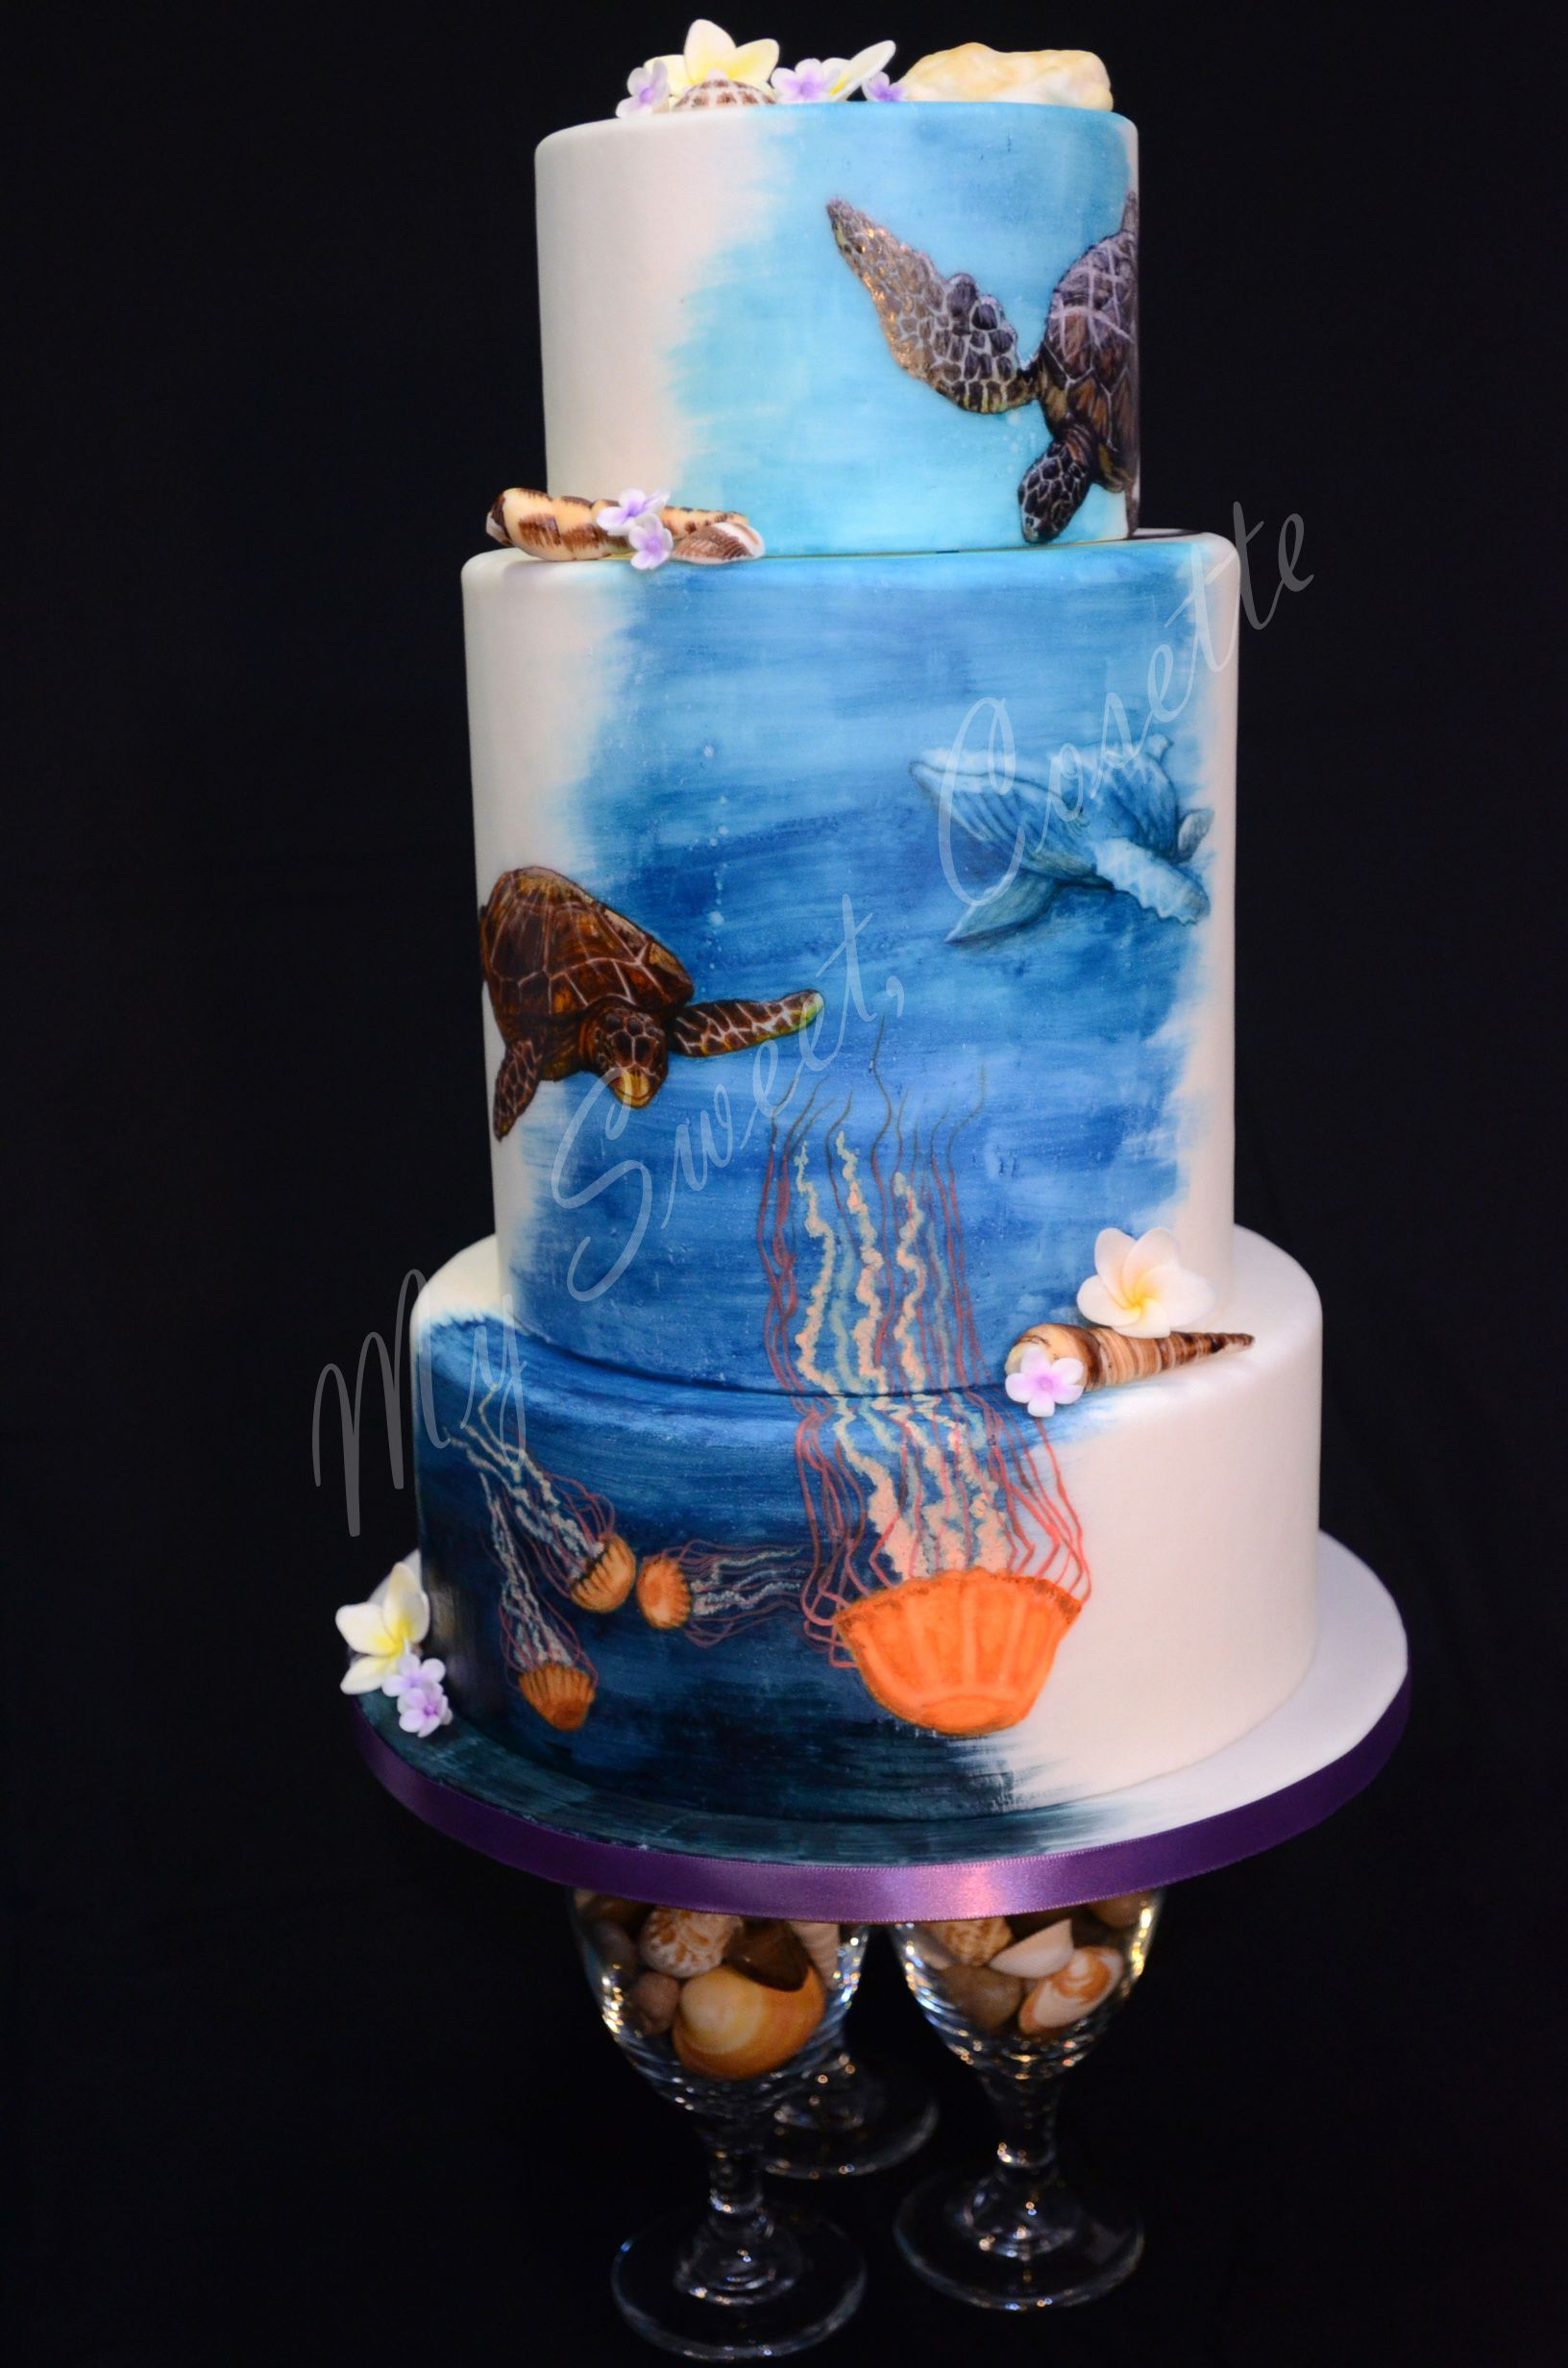 beach themed wedding cakes pinterest%0A Ocean cake  All free hand work on the painting by my partner  complimented  by